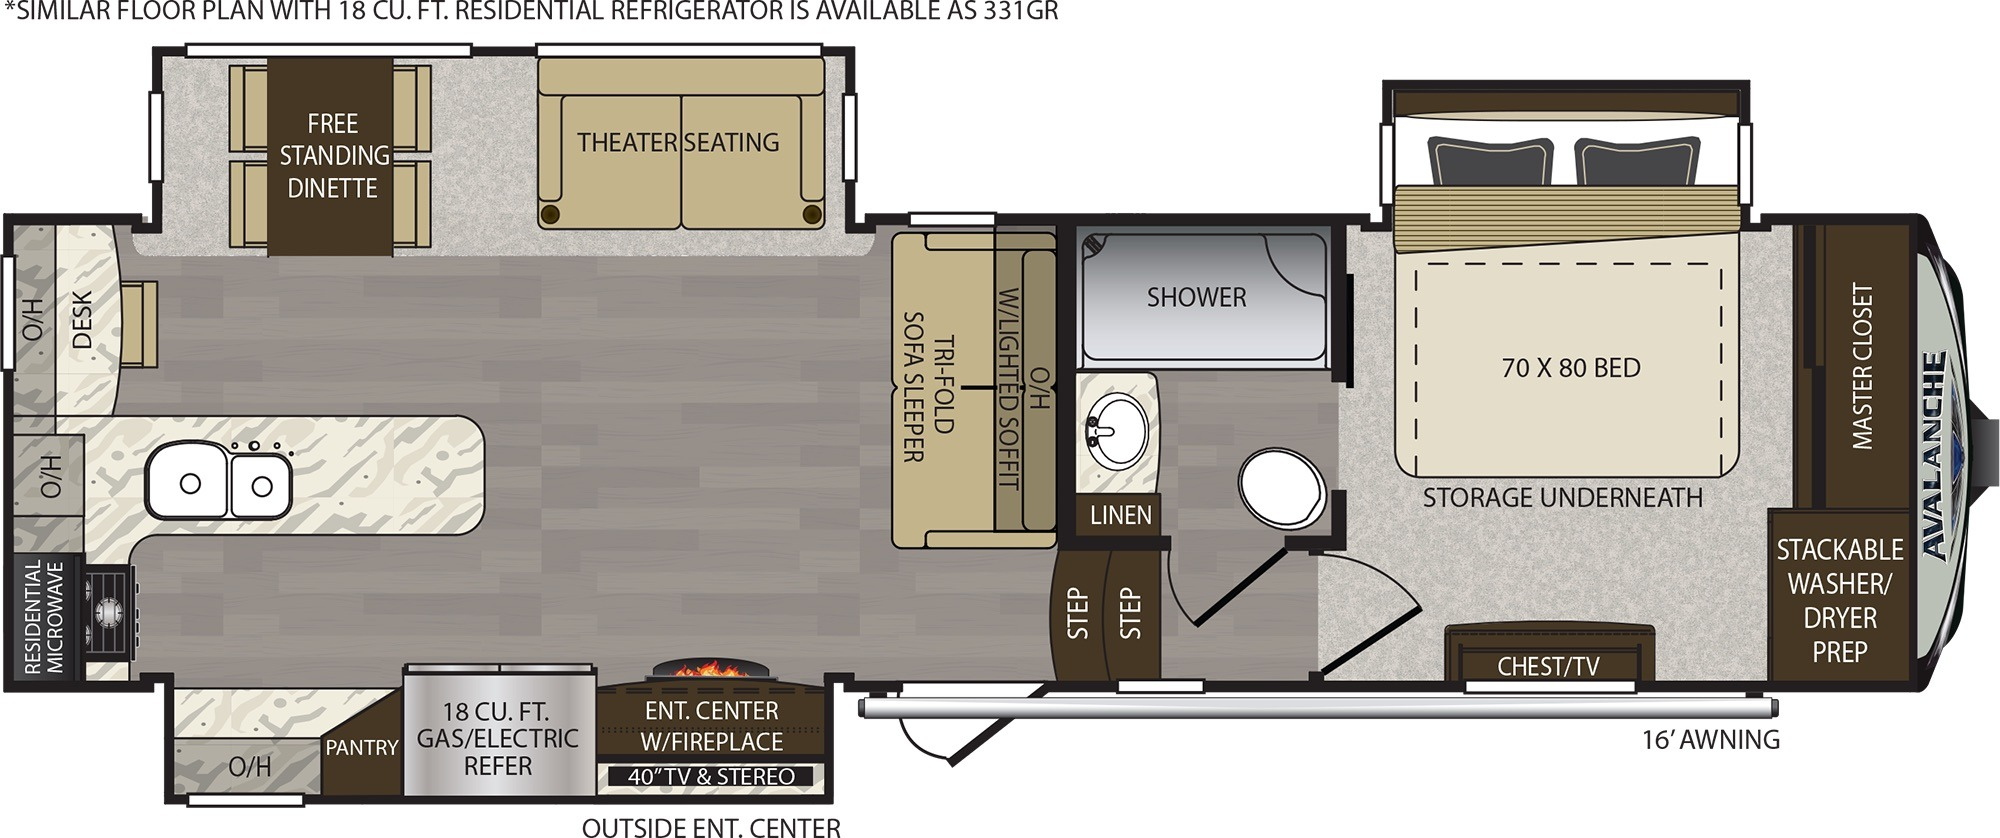 View Floor Plan for 2019 KEYSTONE AVALANCHE 330GR